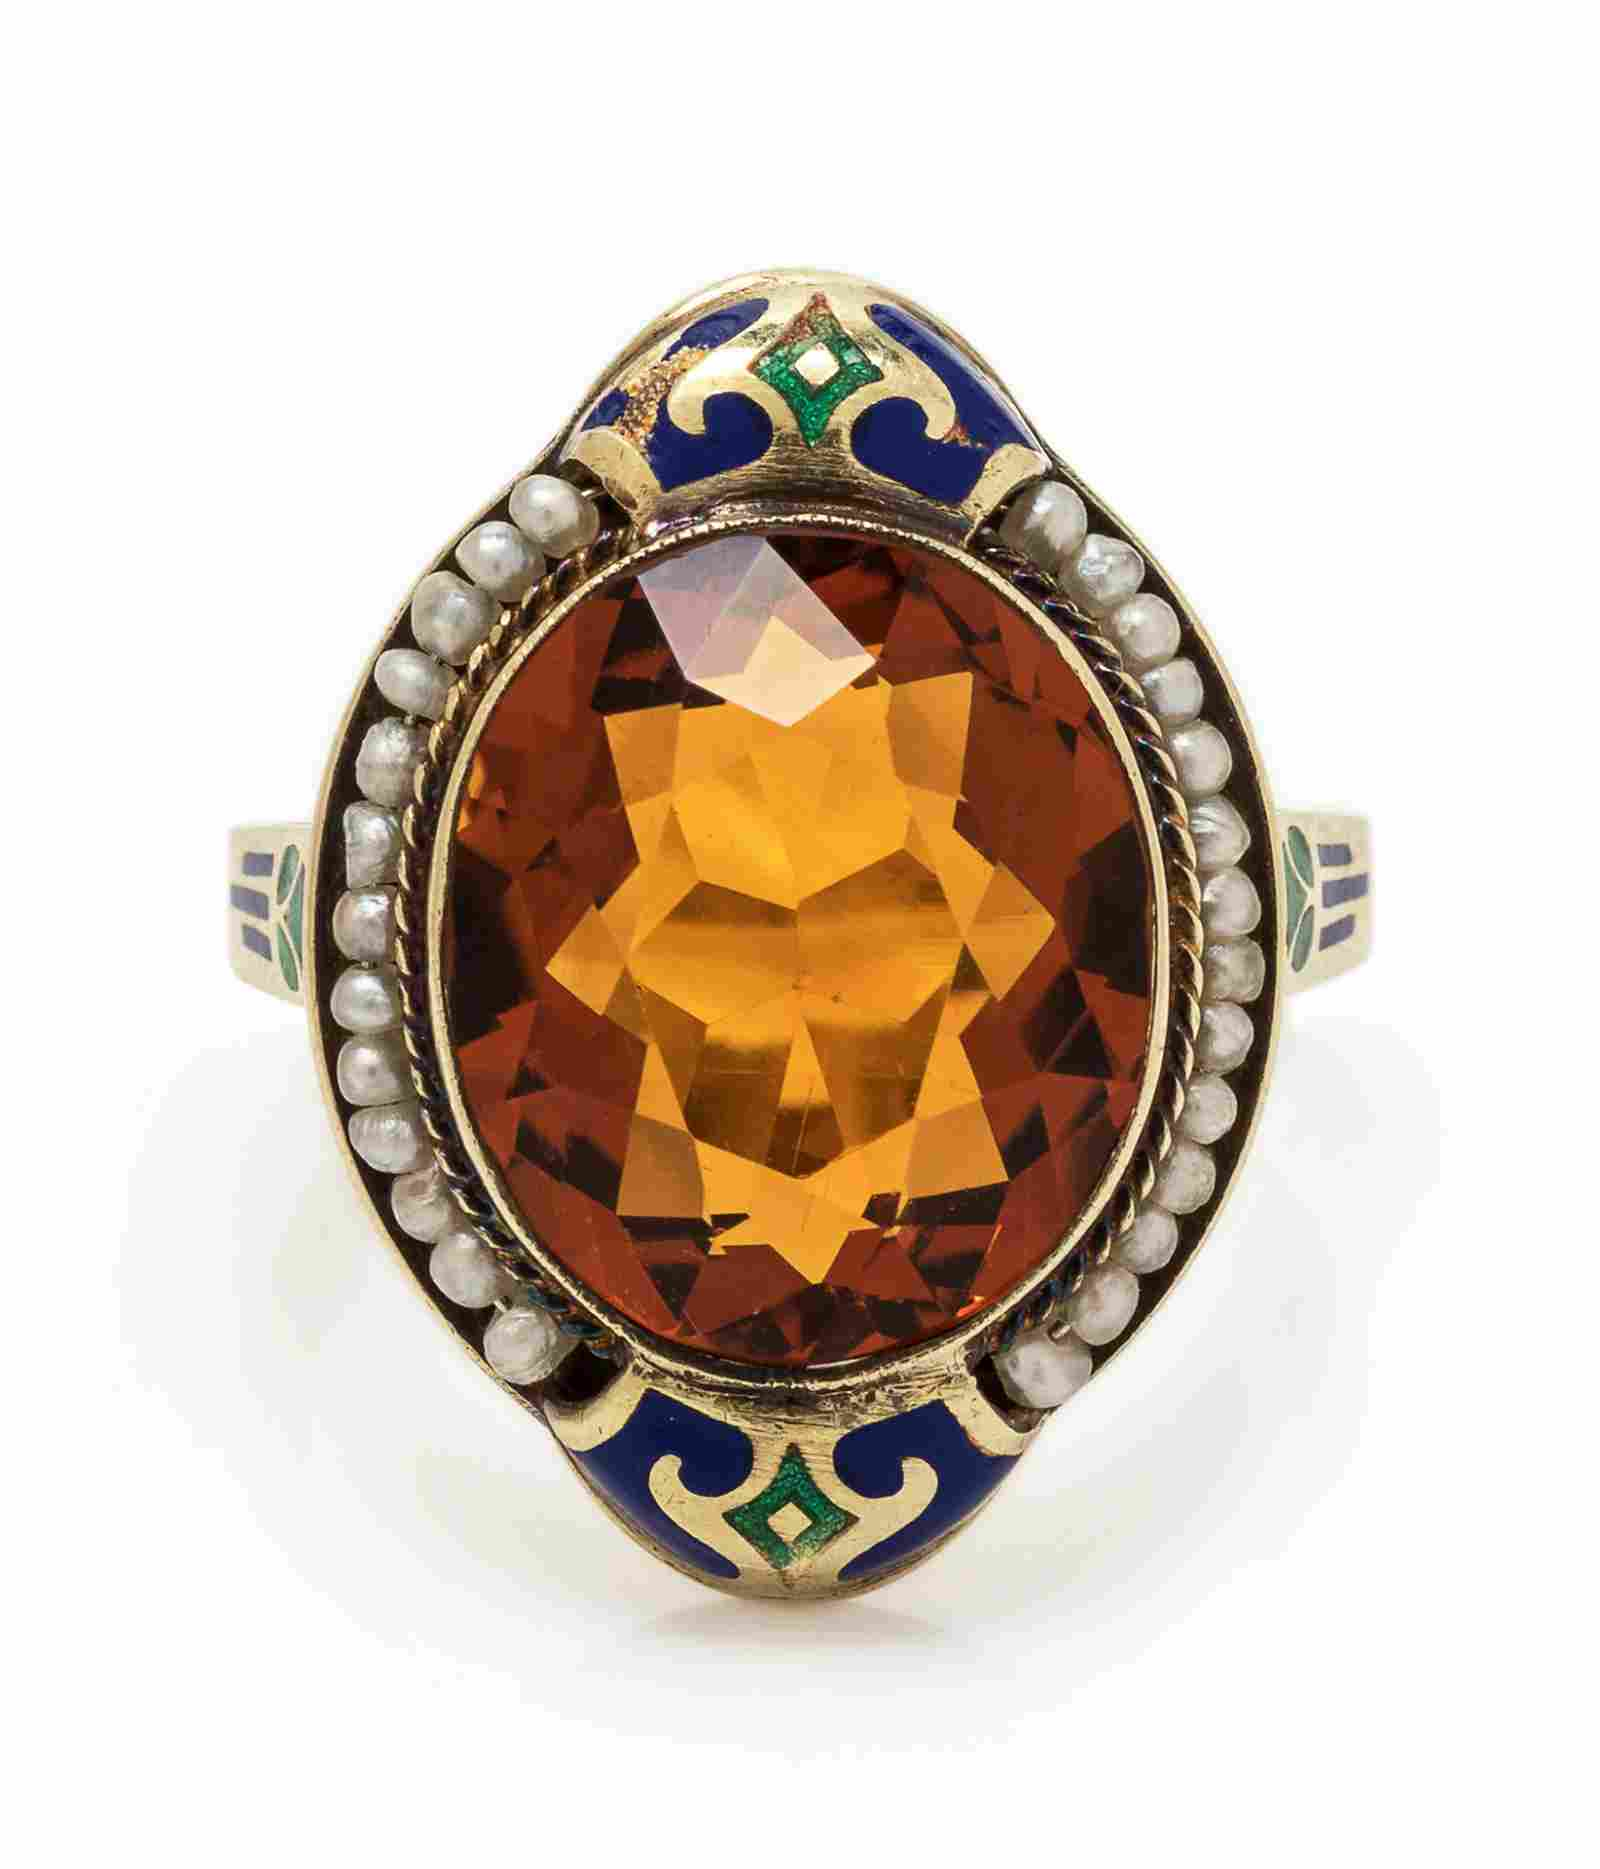 An Art Deco 14 Karat Yellow Gold, Citrine, Seed Pearl